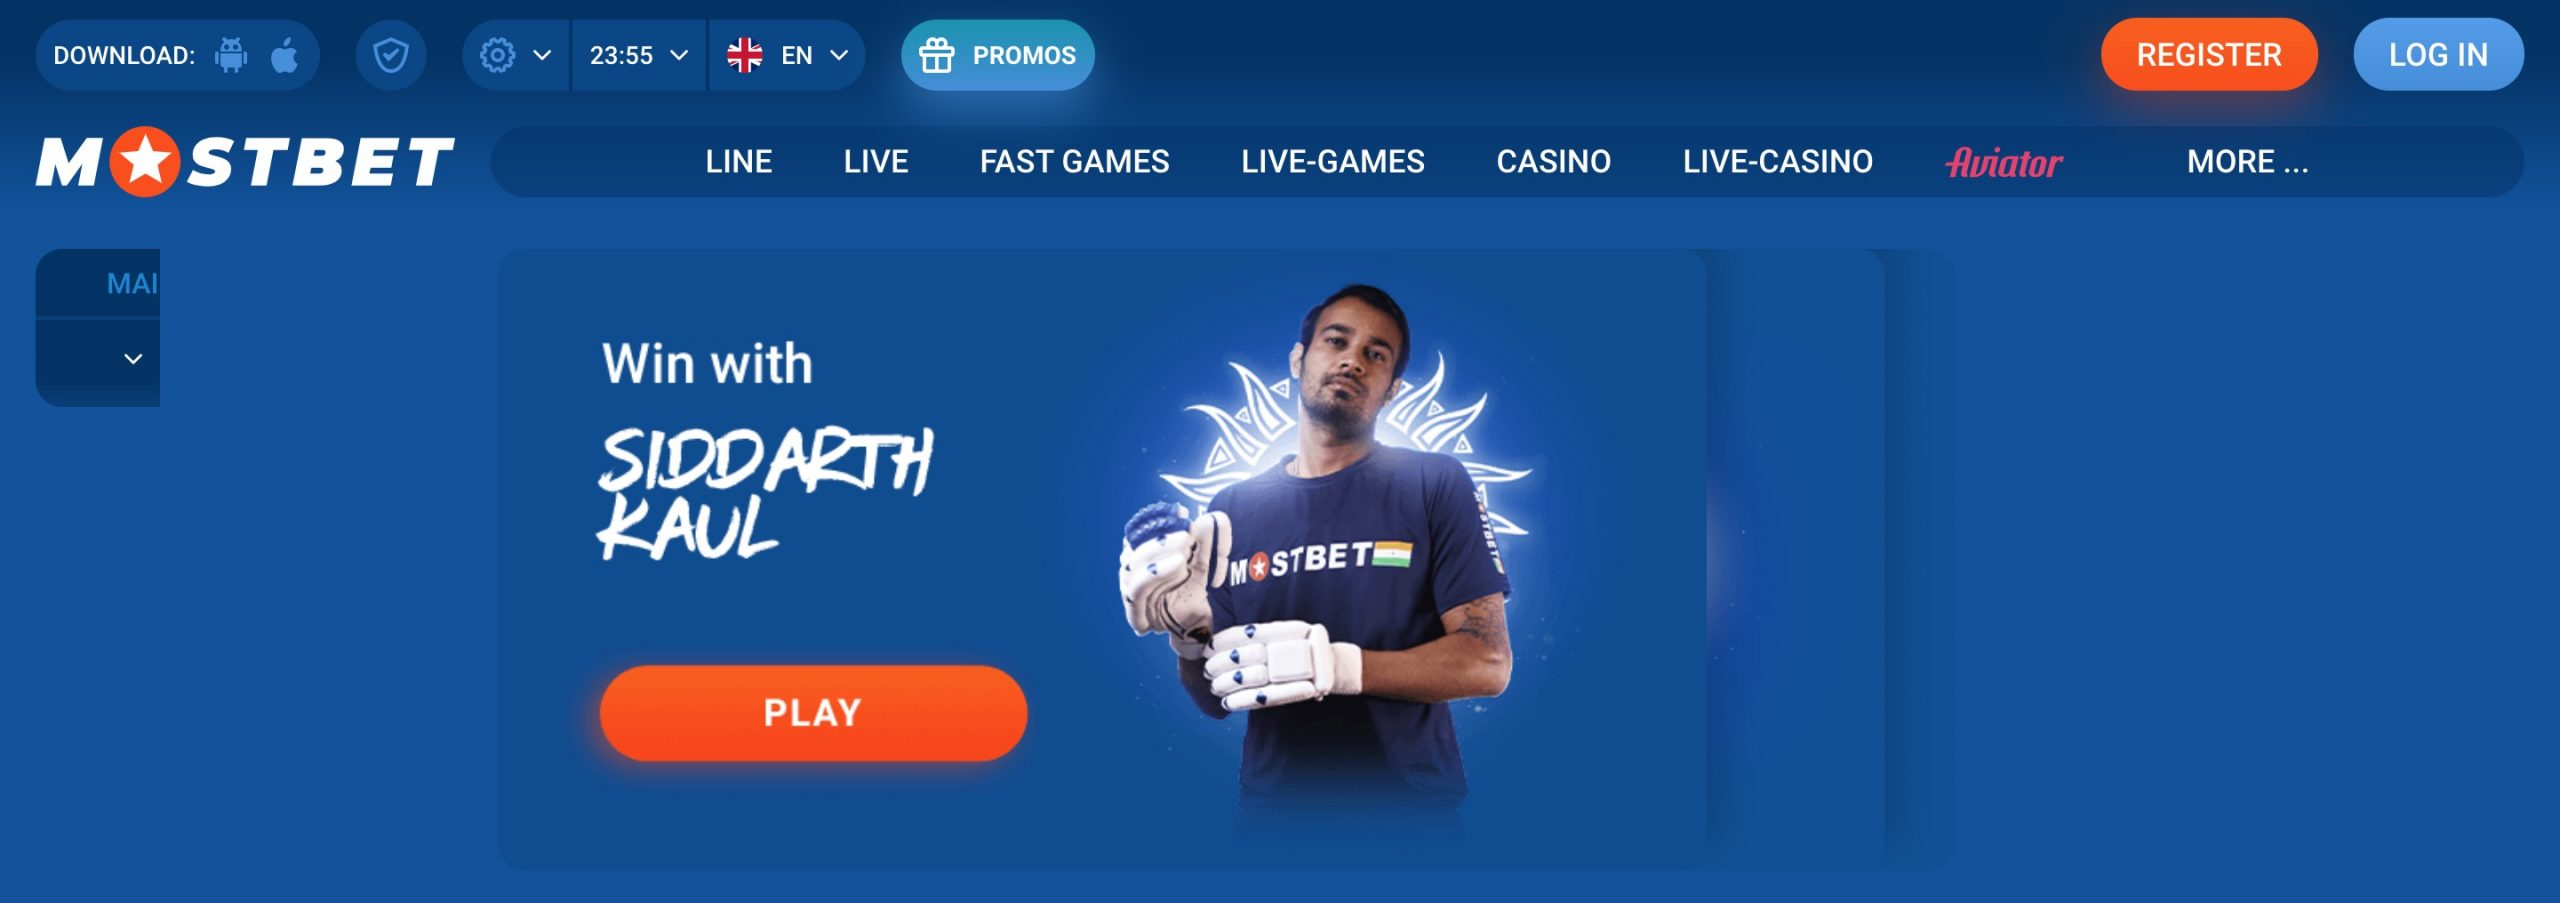 MostBet main page